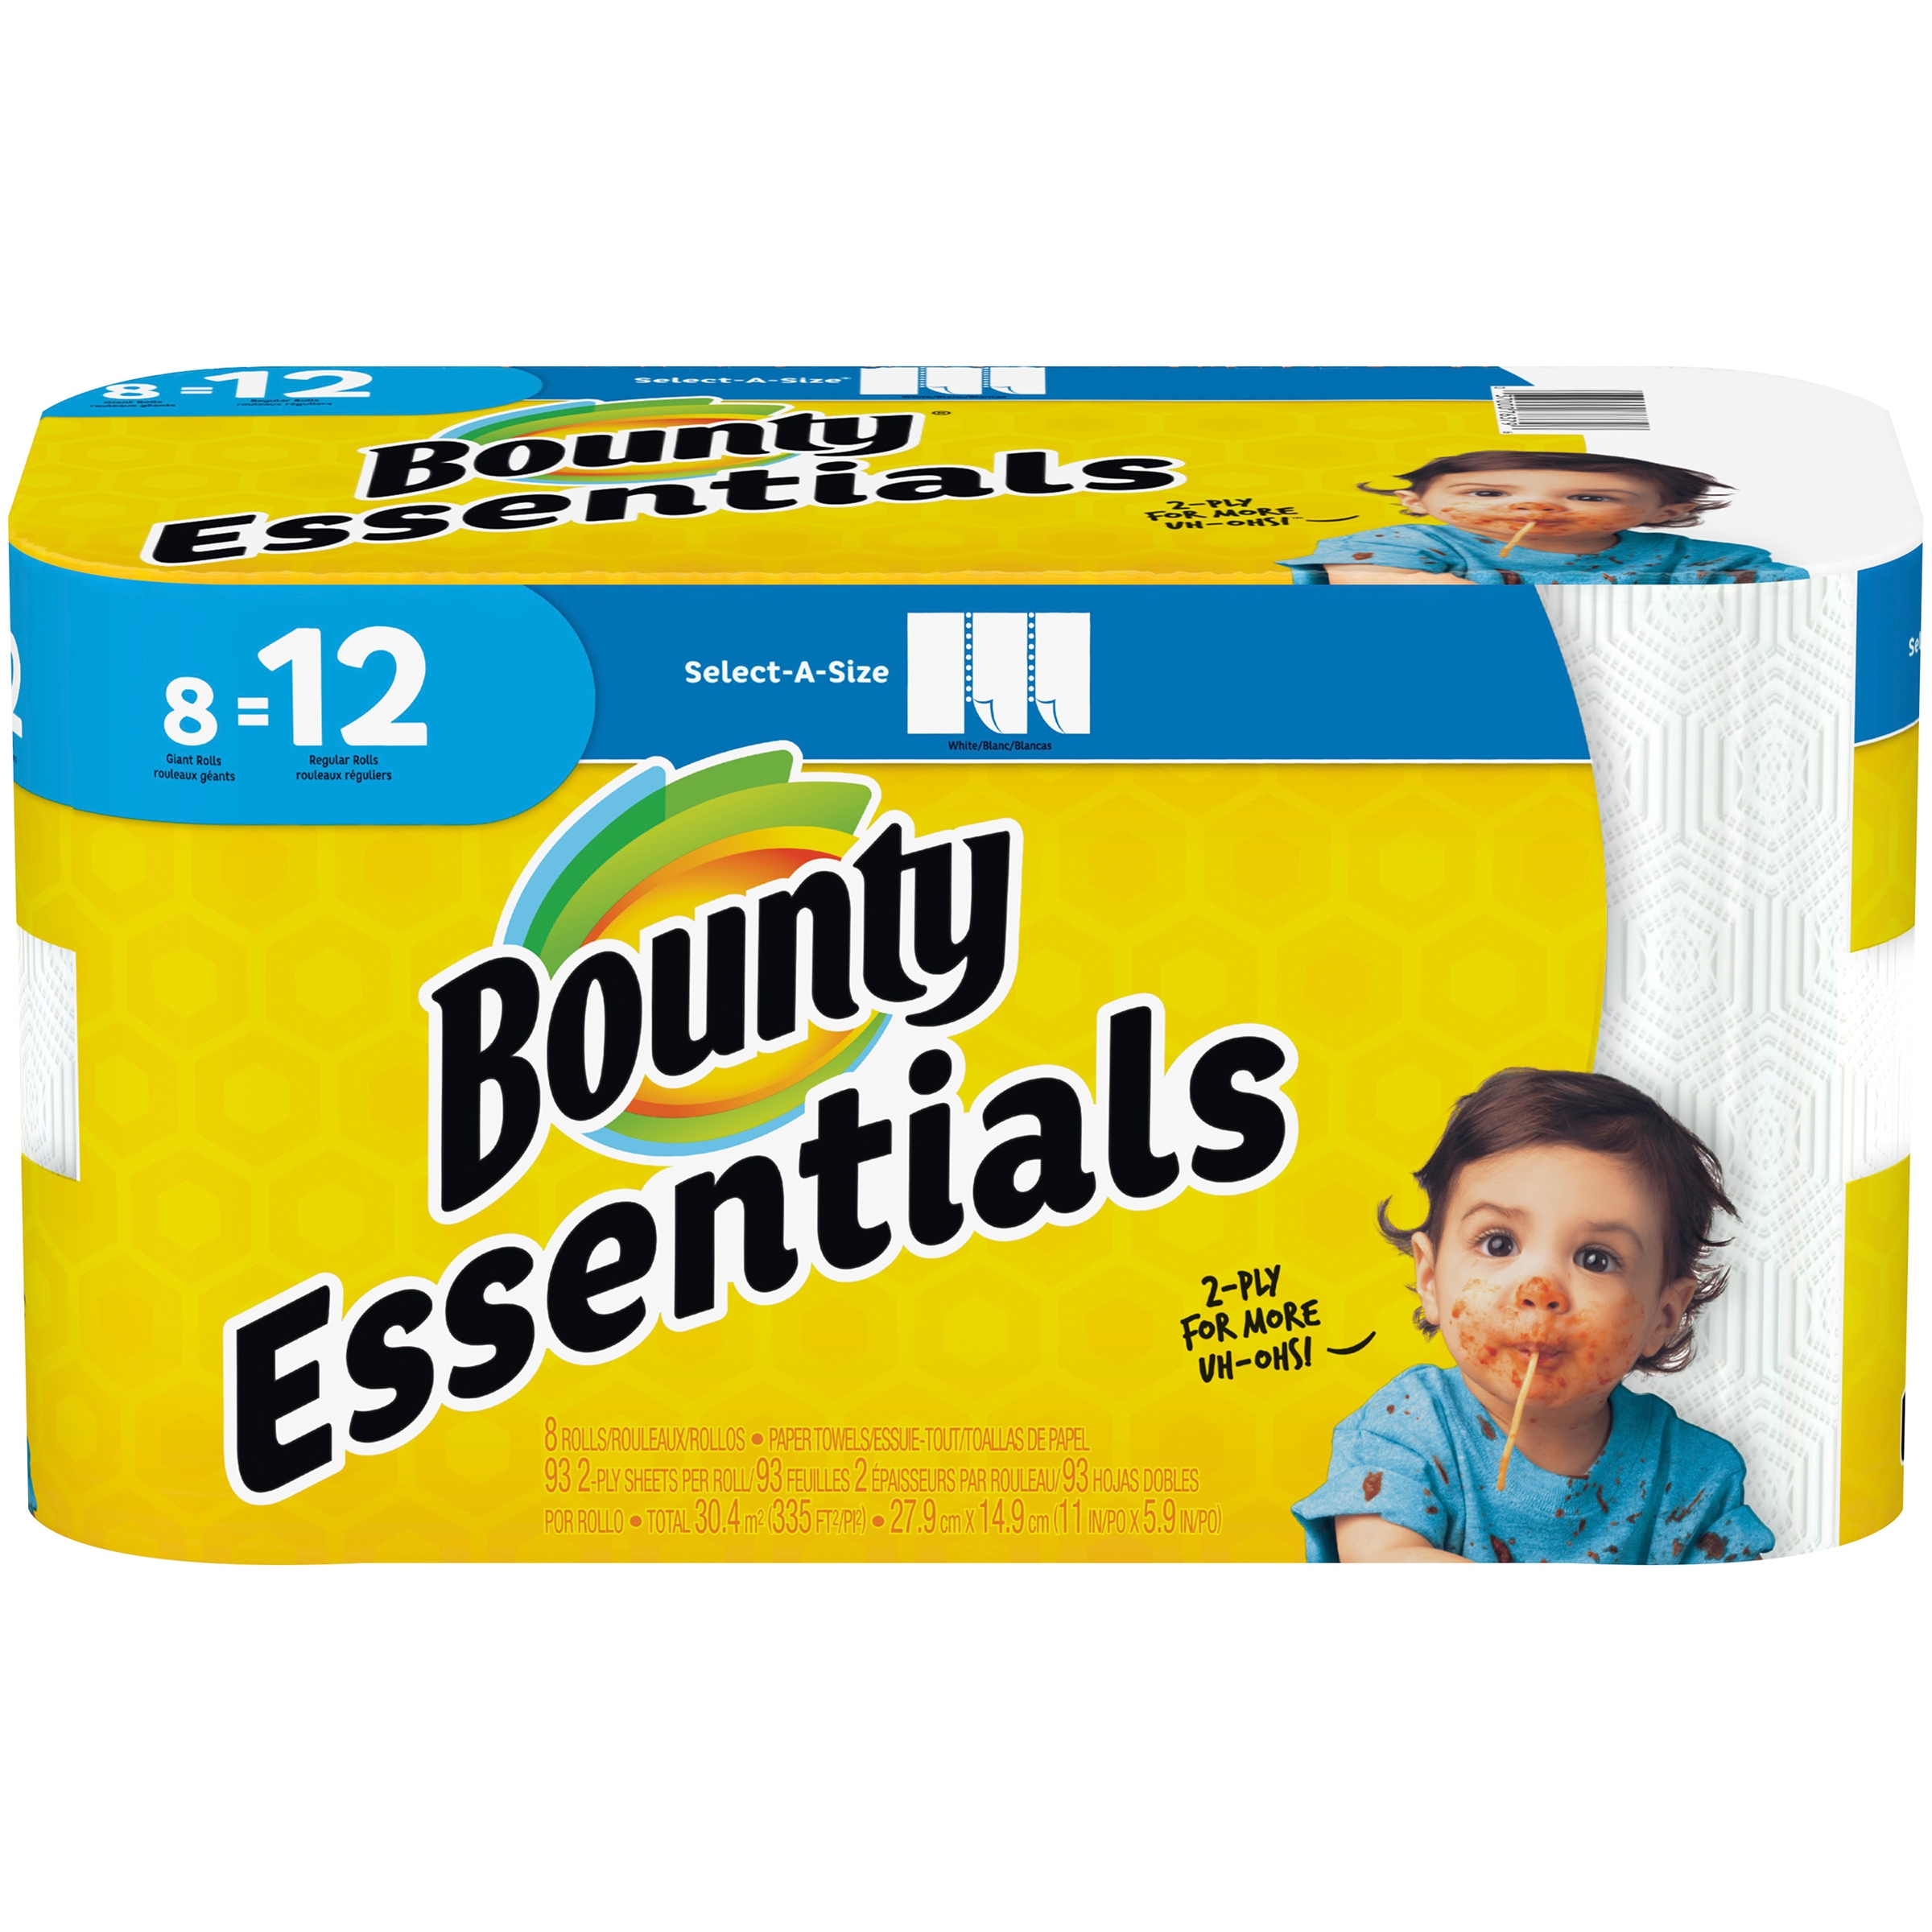 Bounty Essentials Paper Towels, Select-A-Size, 8 Giant Rolls